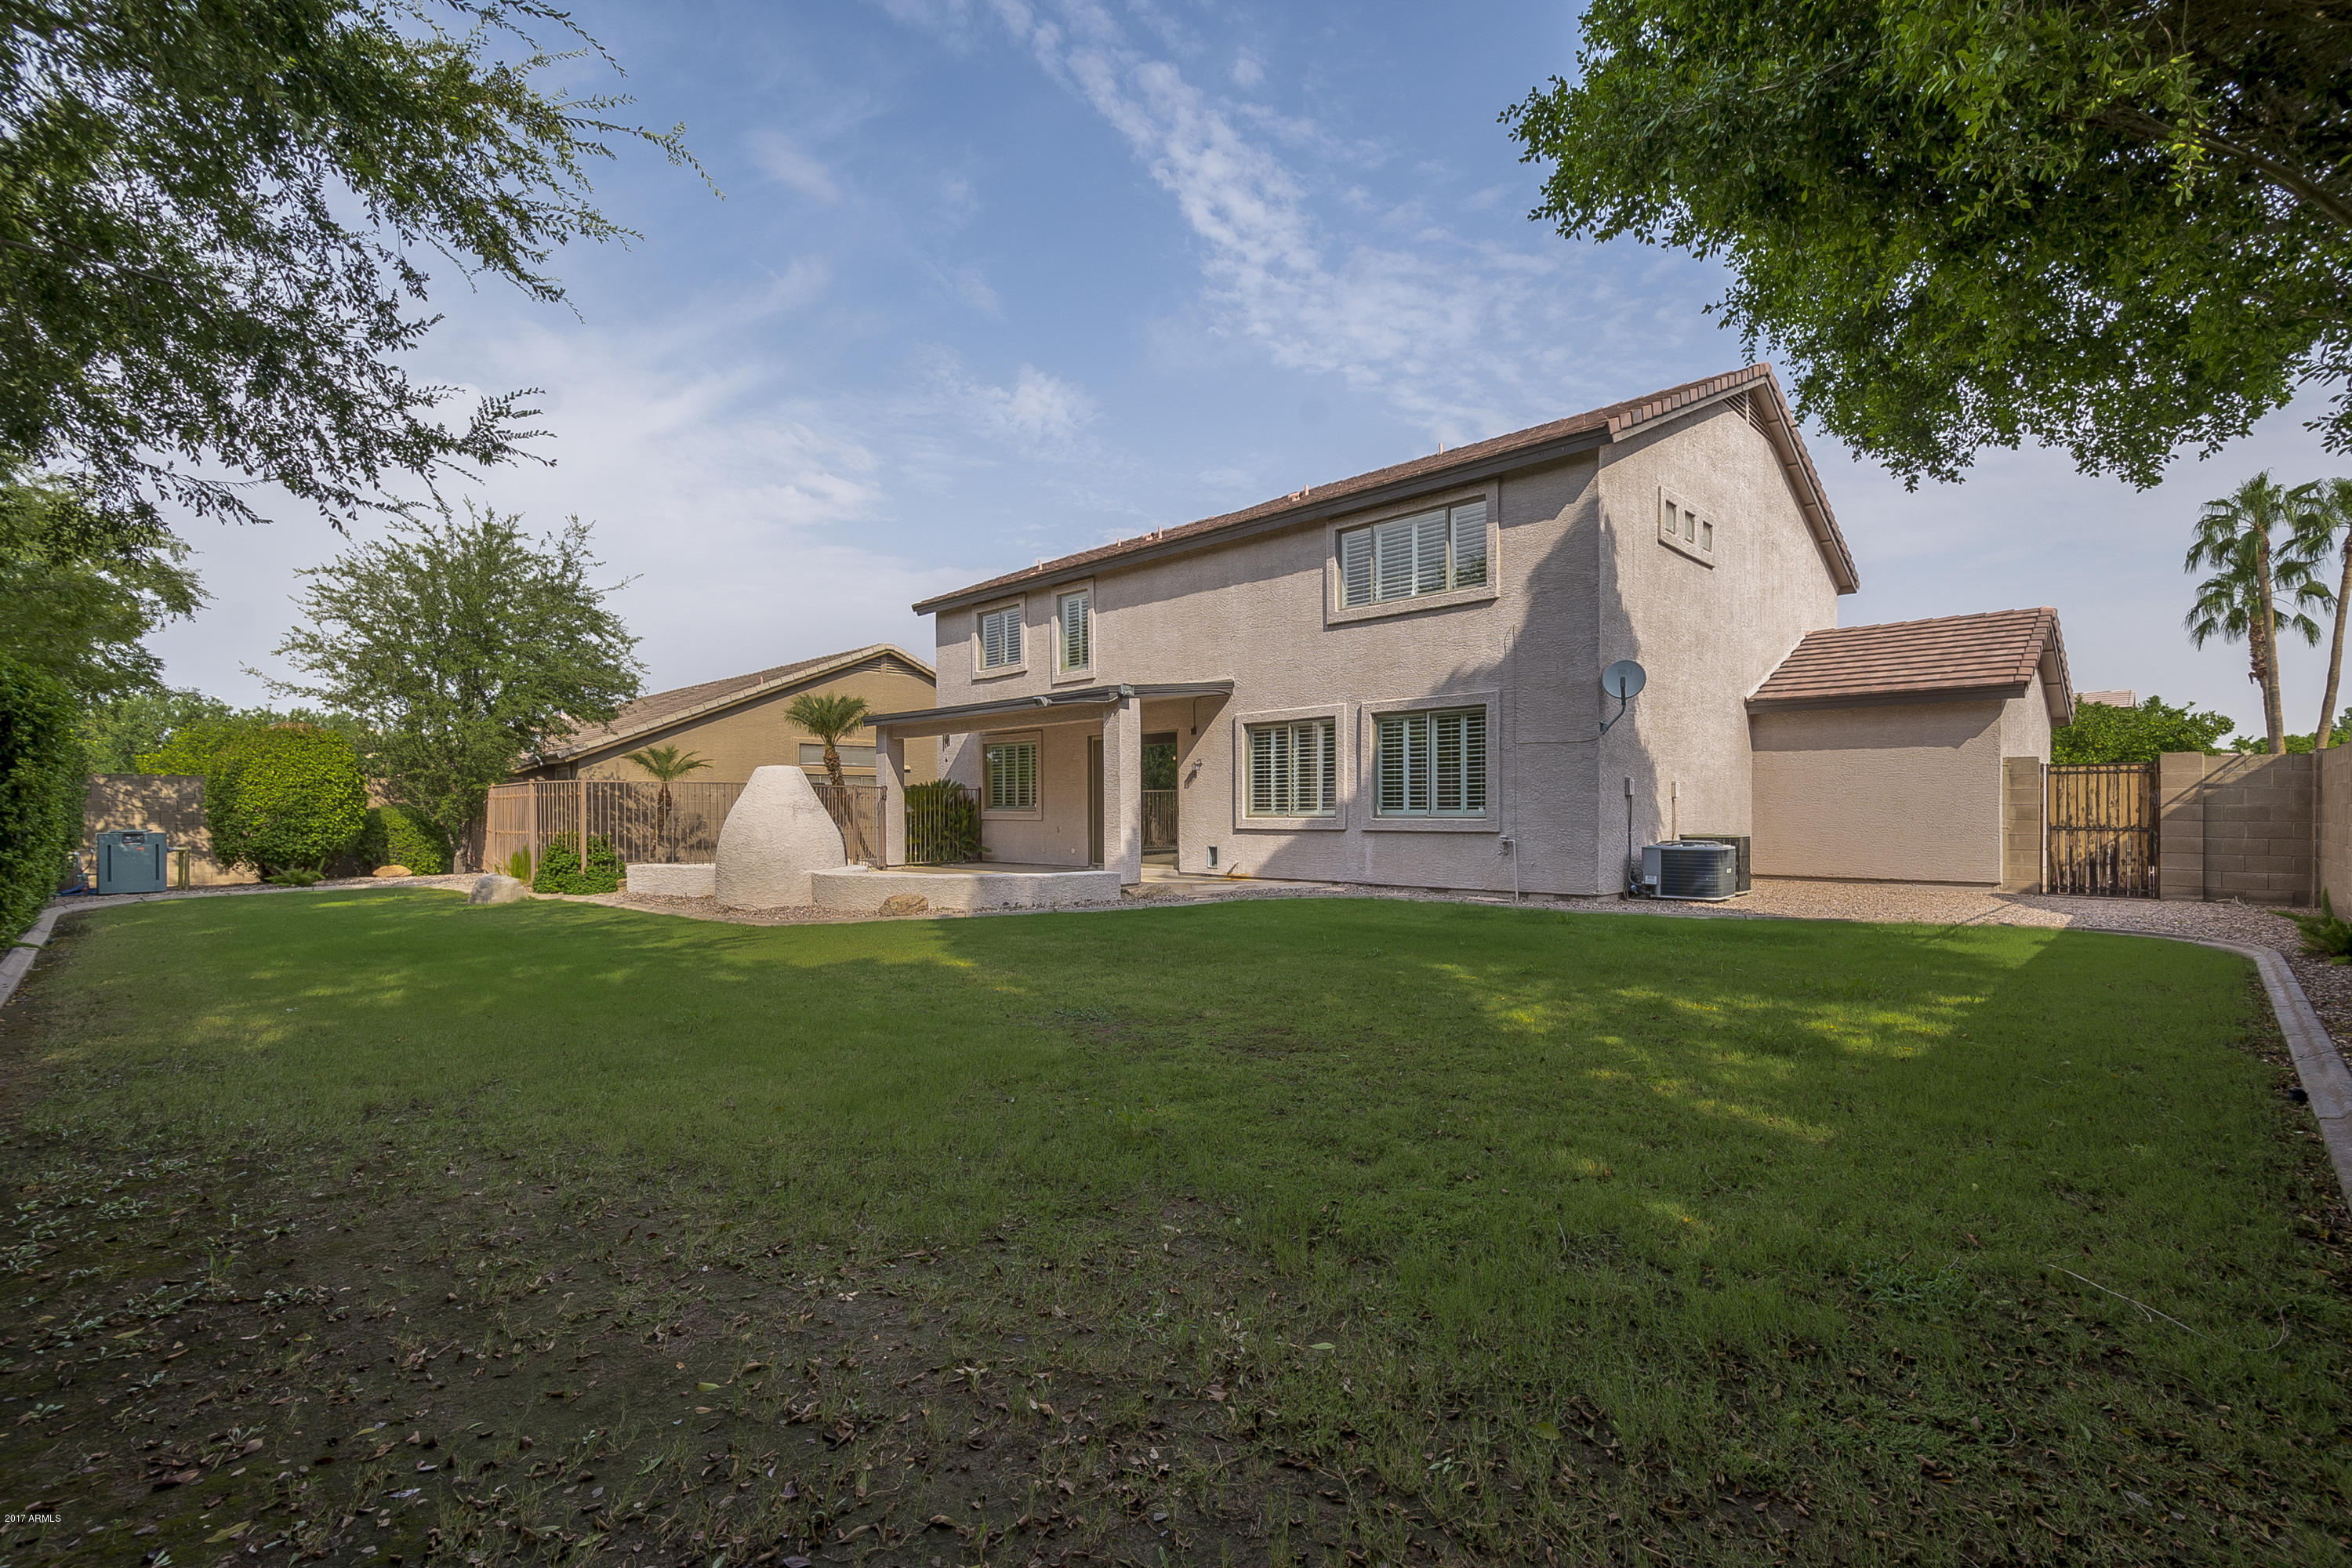 12/08 Friday 3-6PM OPEN HOUSE Features 2 Mesa, AZ Homes